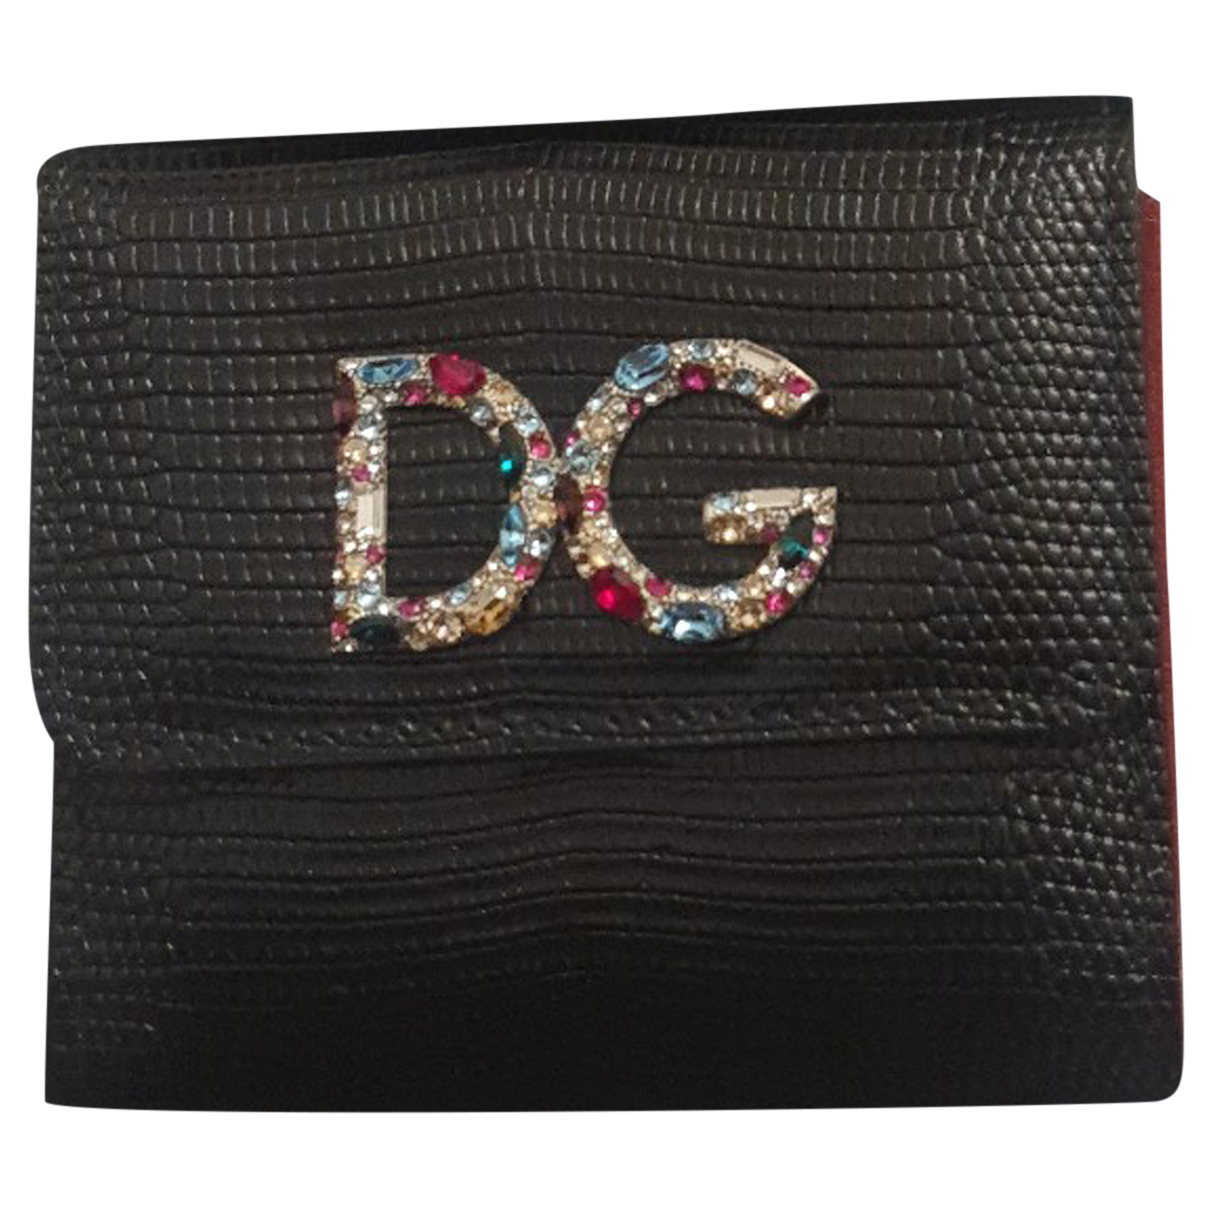 Dolce & Gabbana N Black Leather Purses, wallet & cases for Women N